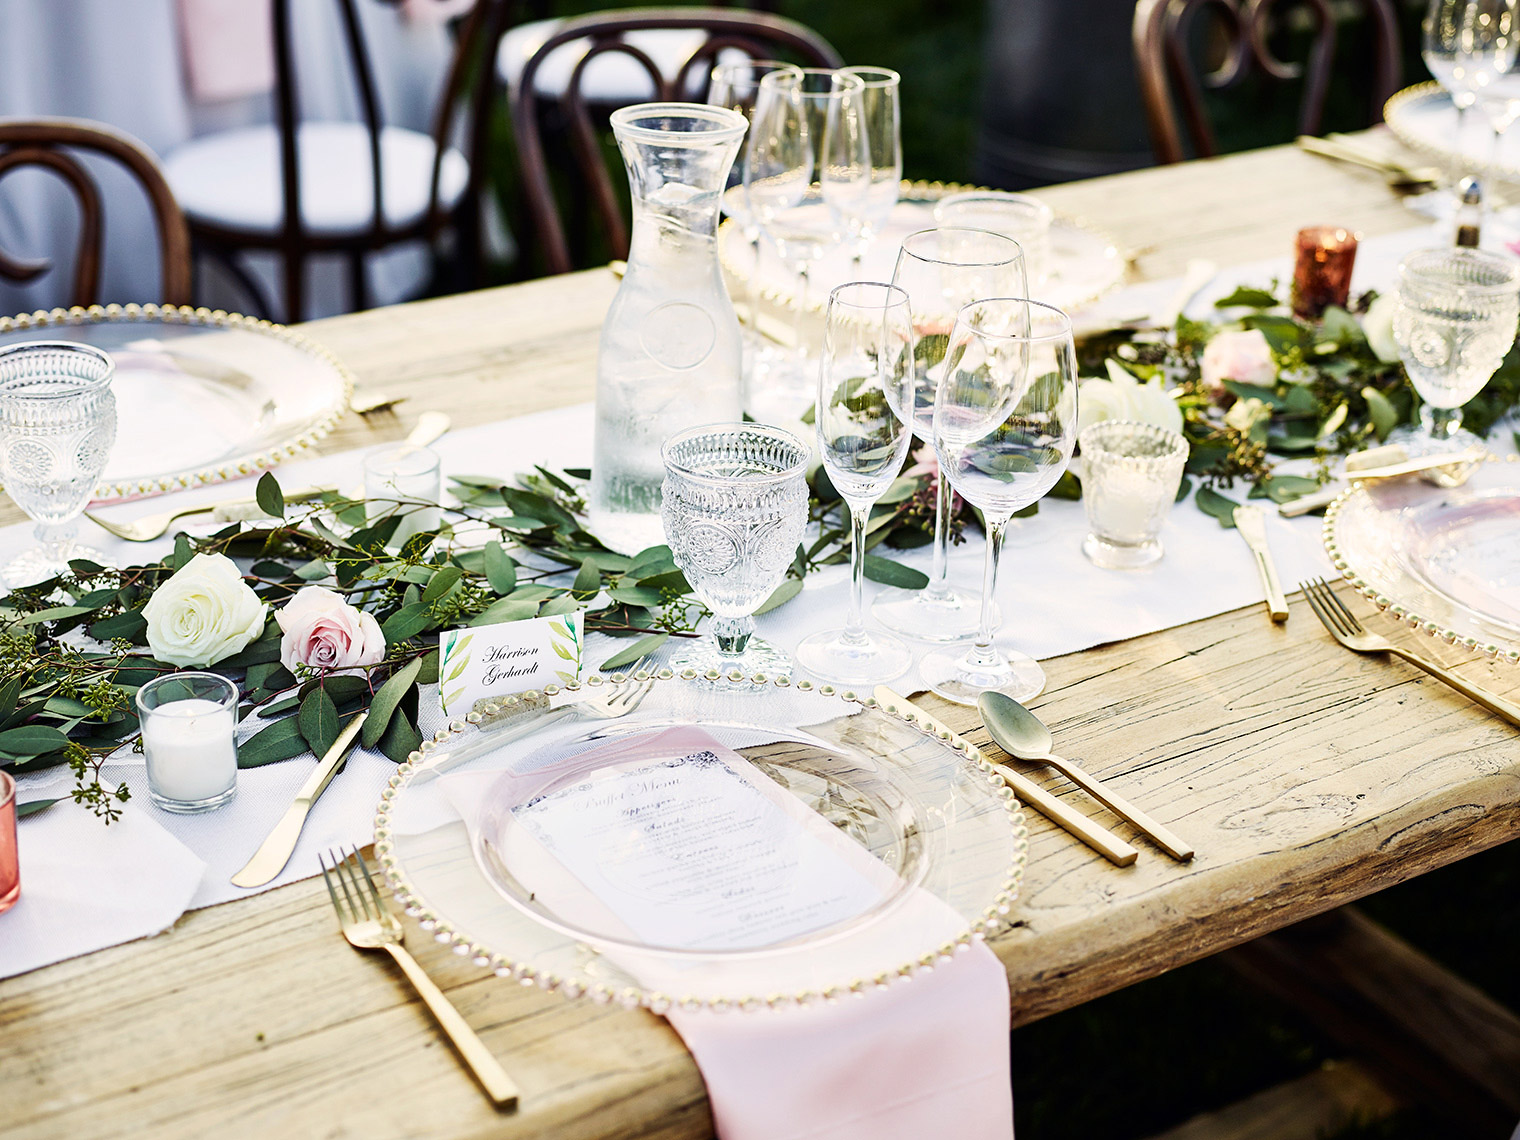 tabletop decor at Wedding reception